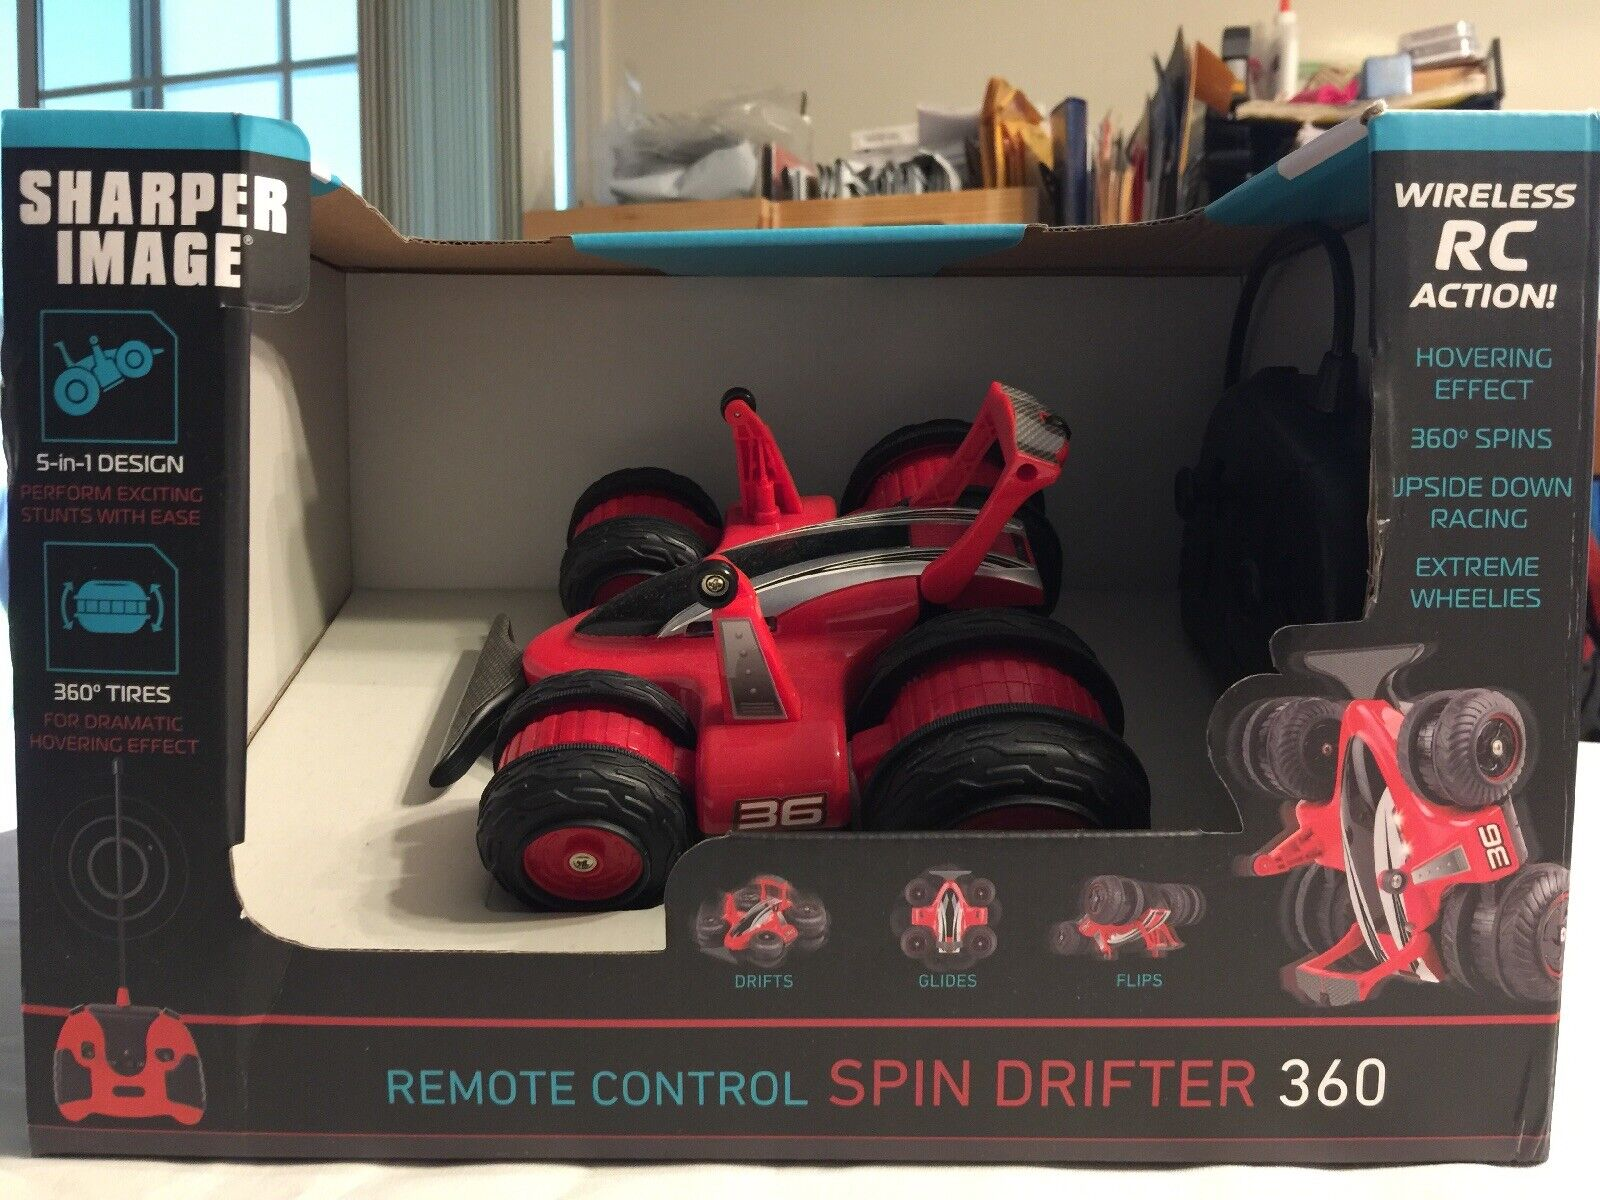 Sharper Image Radio Control Spin Drifter 360 Red  New in Box